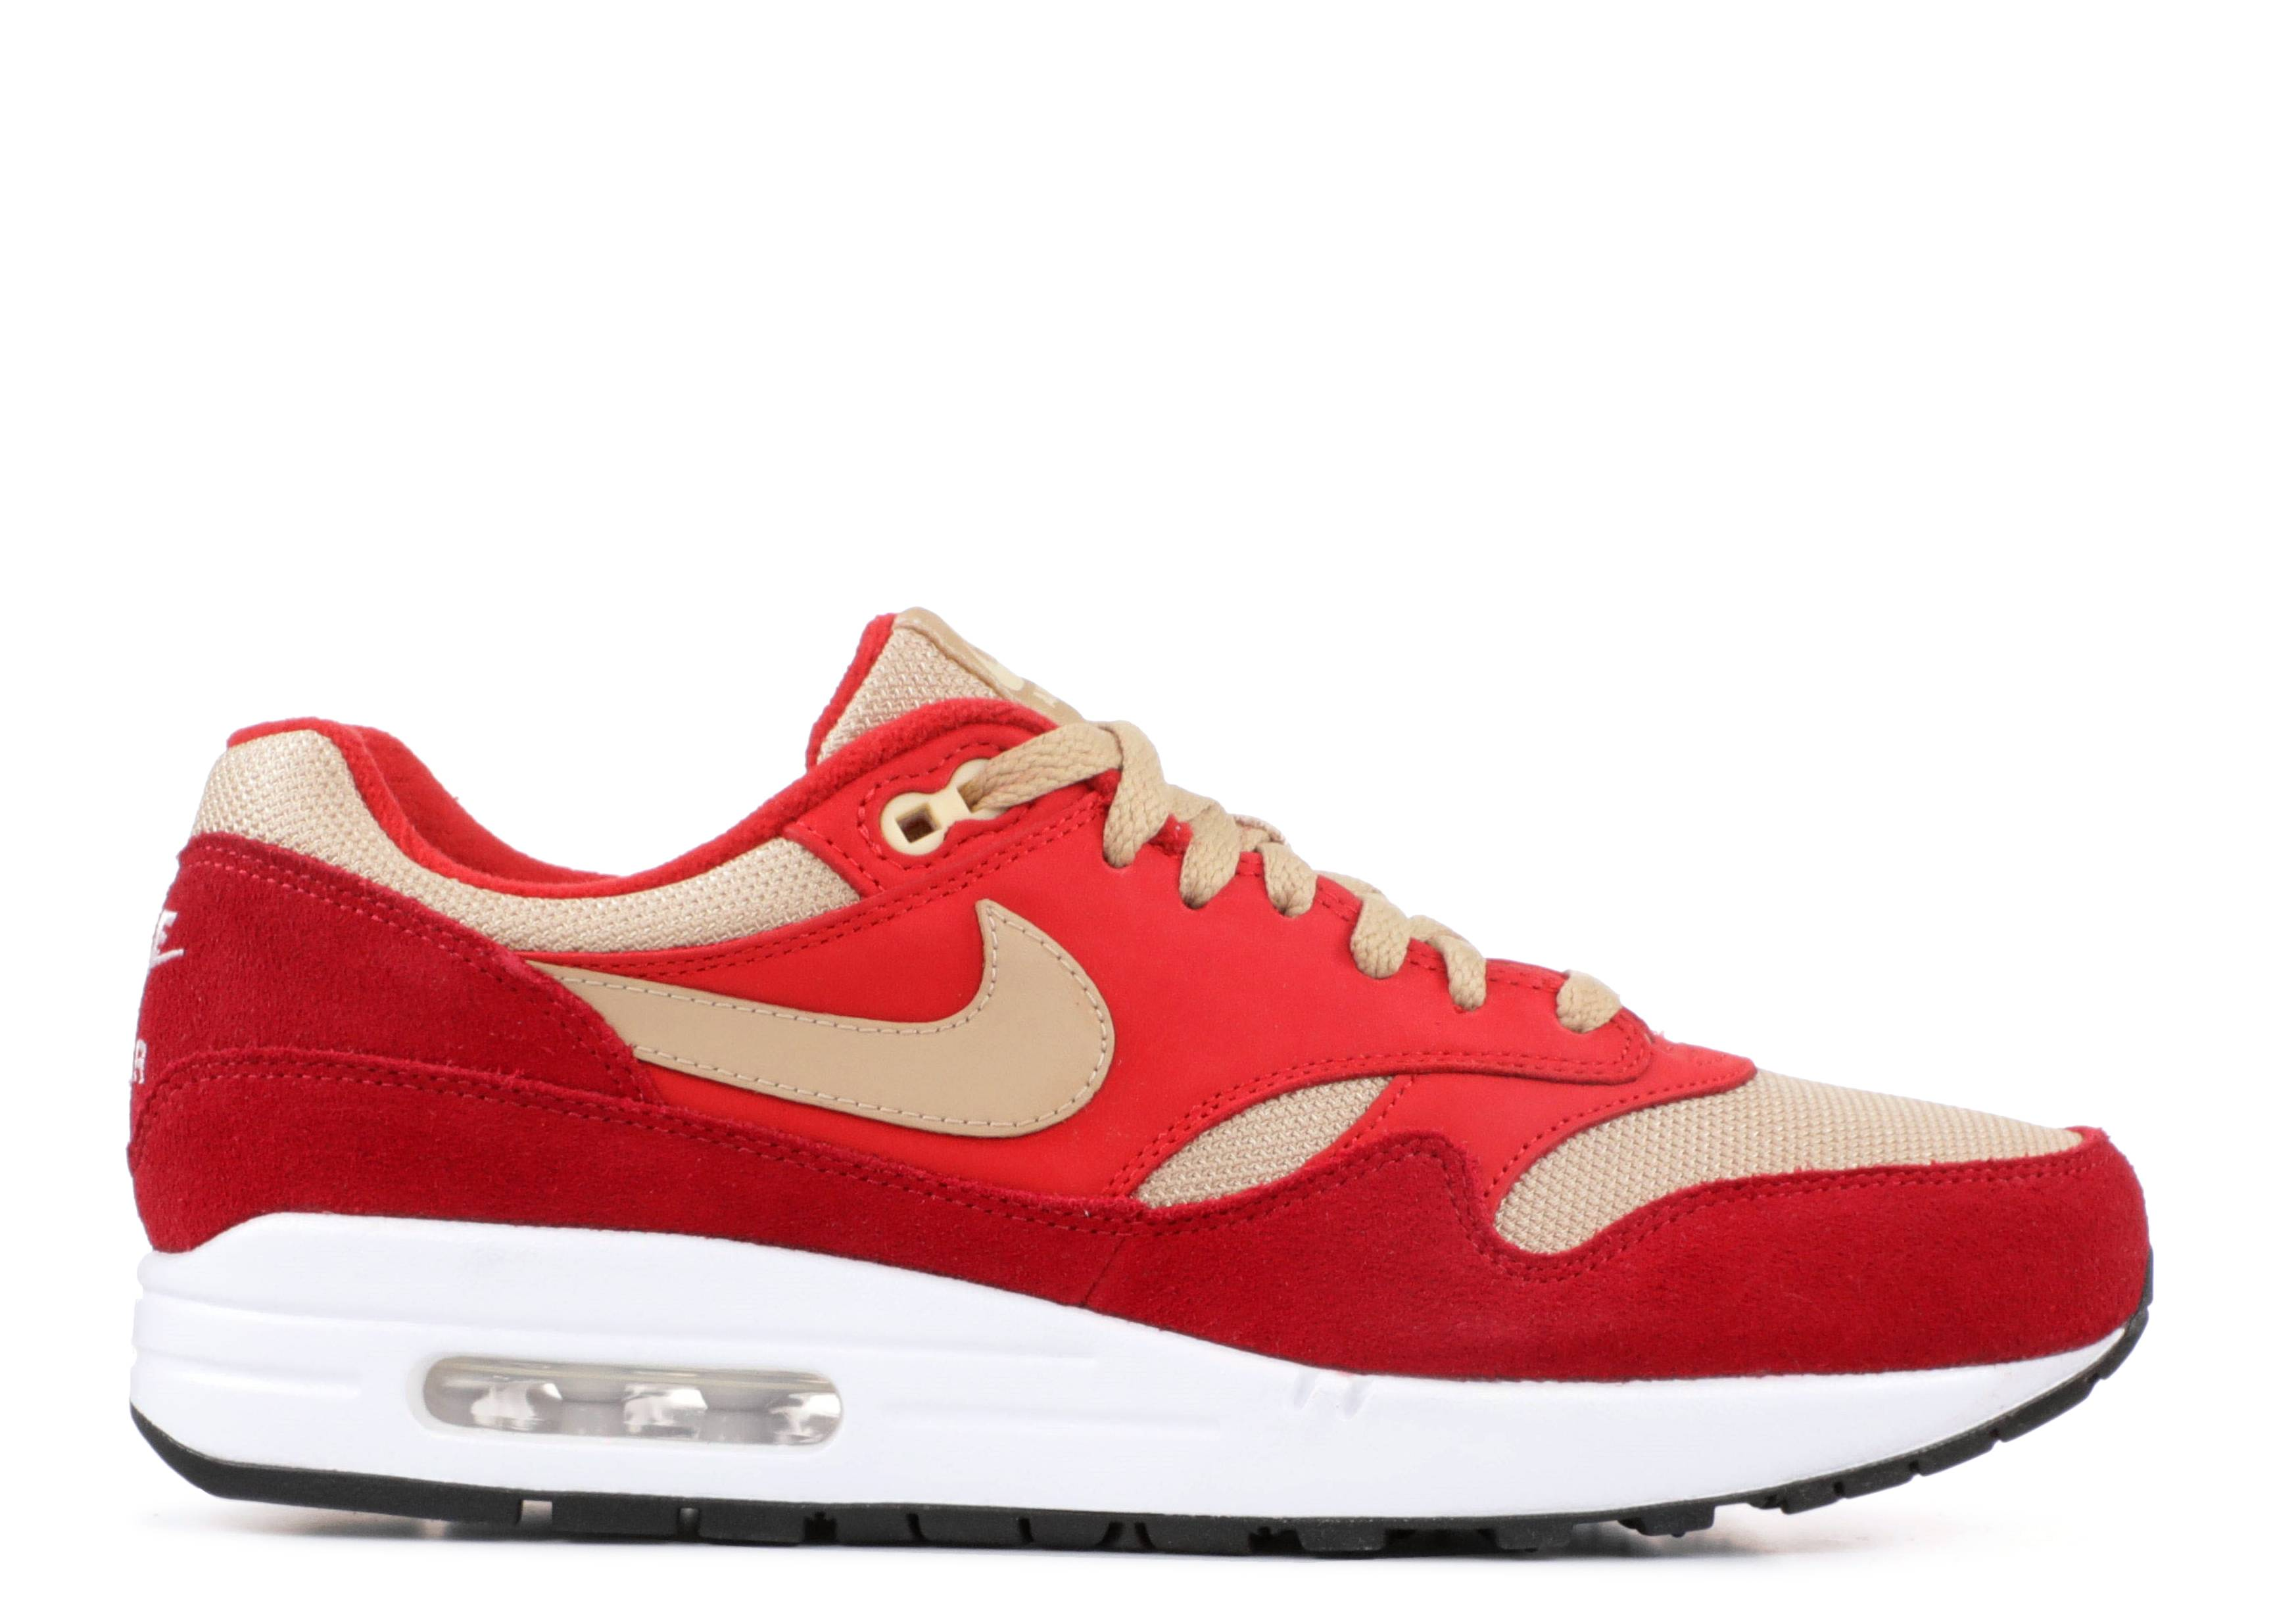 "Air Max 1 Premium Retro 'Red Curry' ""Red Curry"""